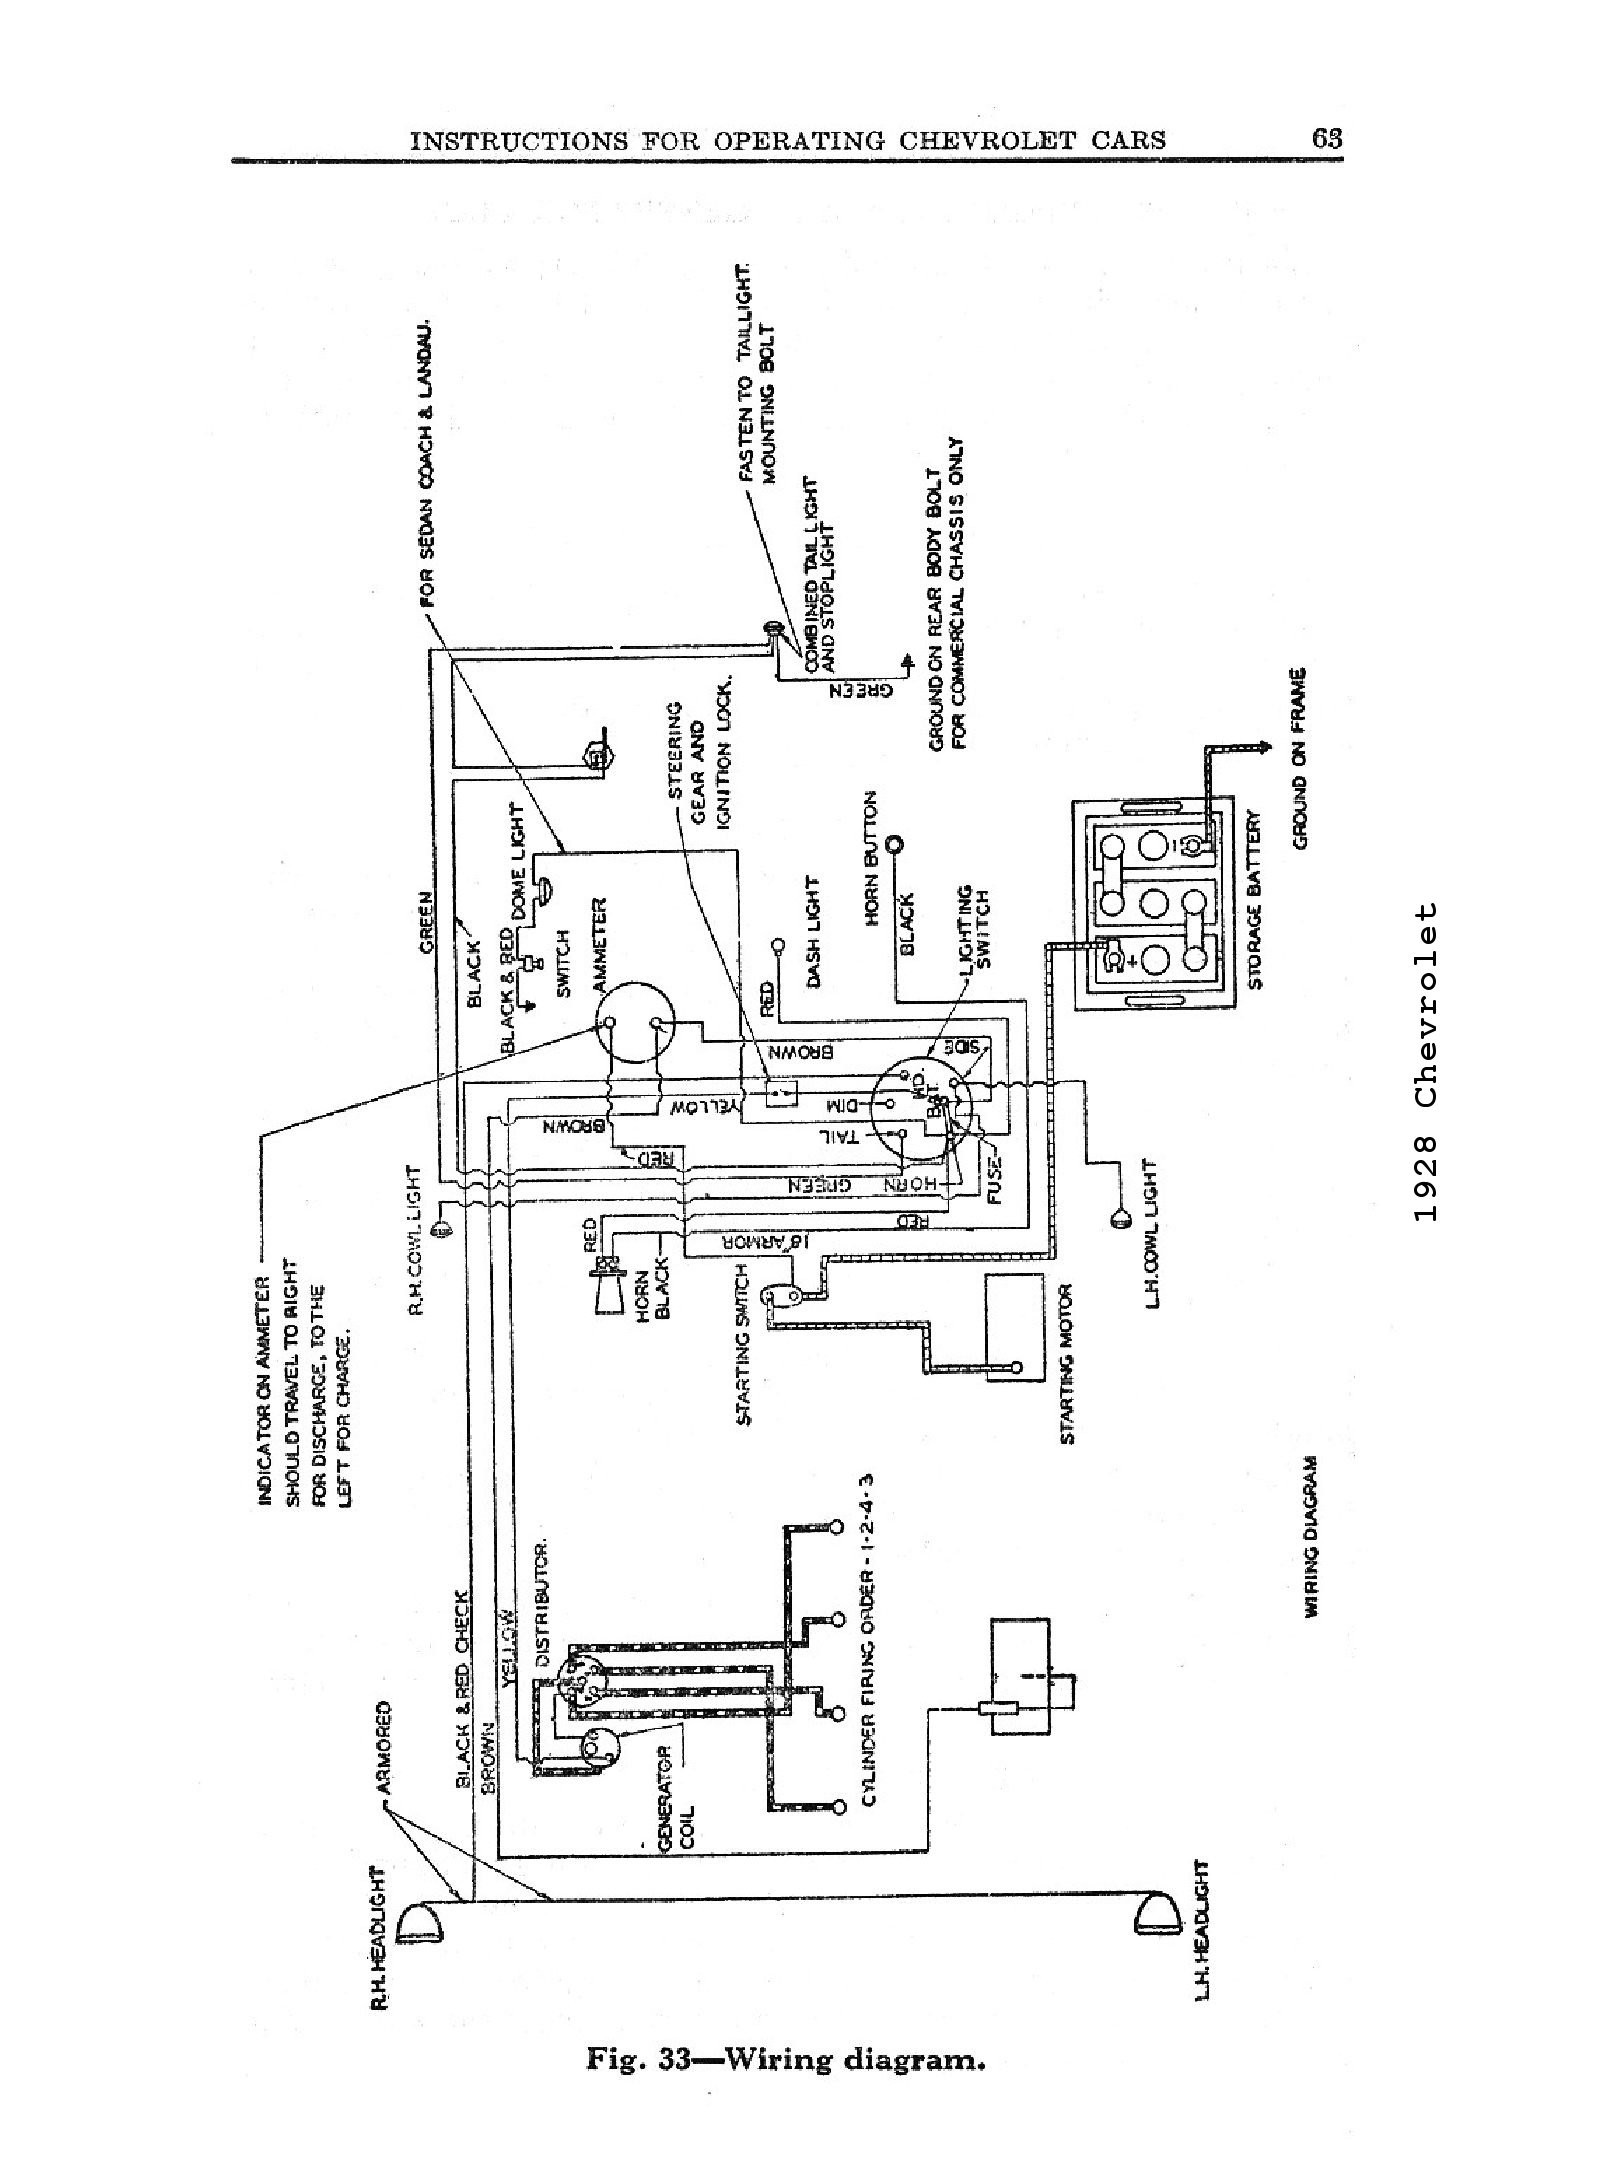 1957 Chevy Truck Wiring Diagram 1957 Chevy Heater Wiring Diagram ...